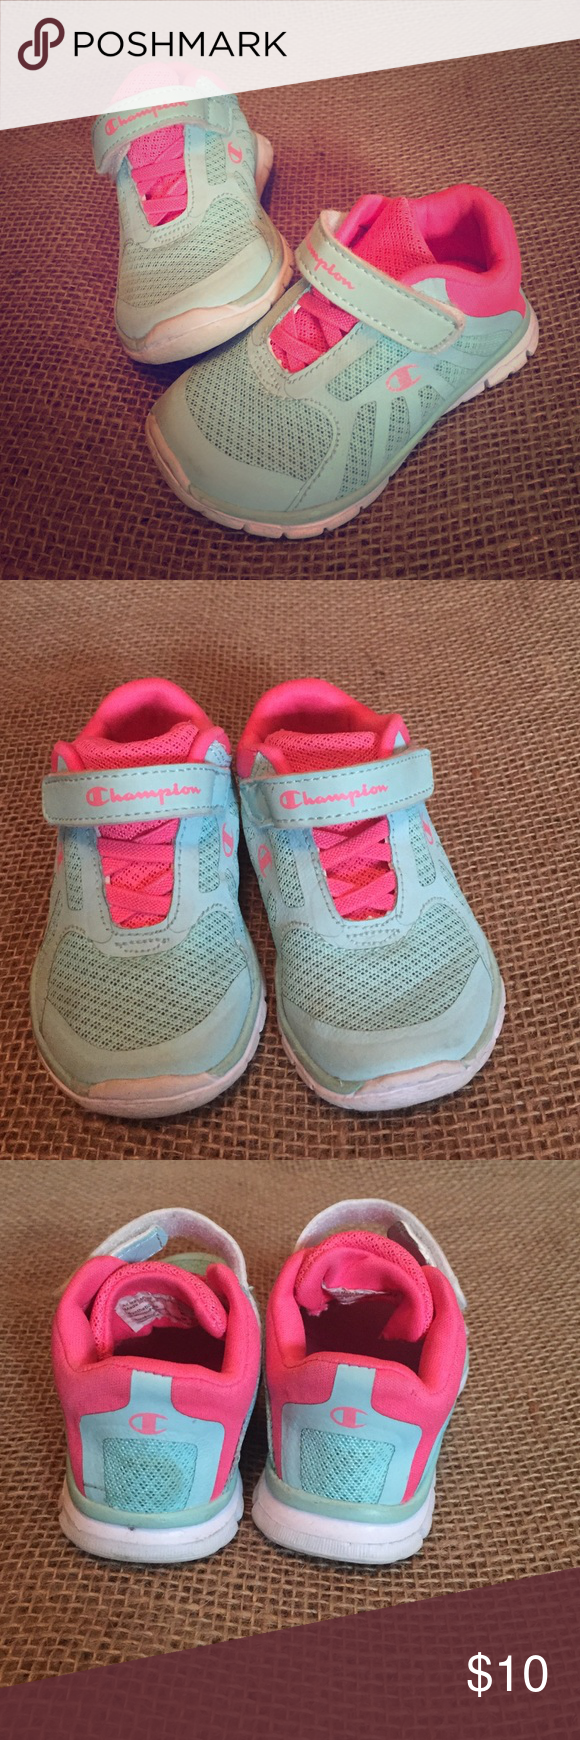 Girls tennis shoes, Champion shoes